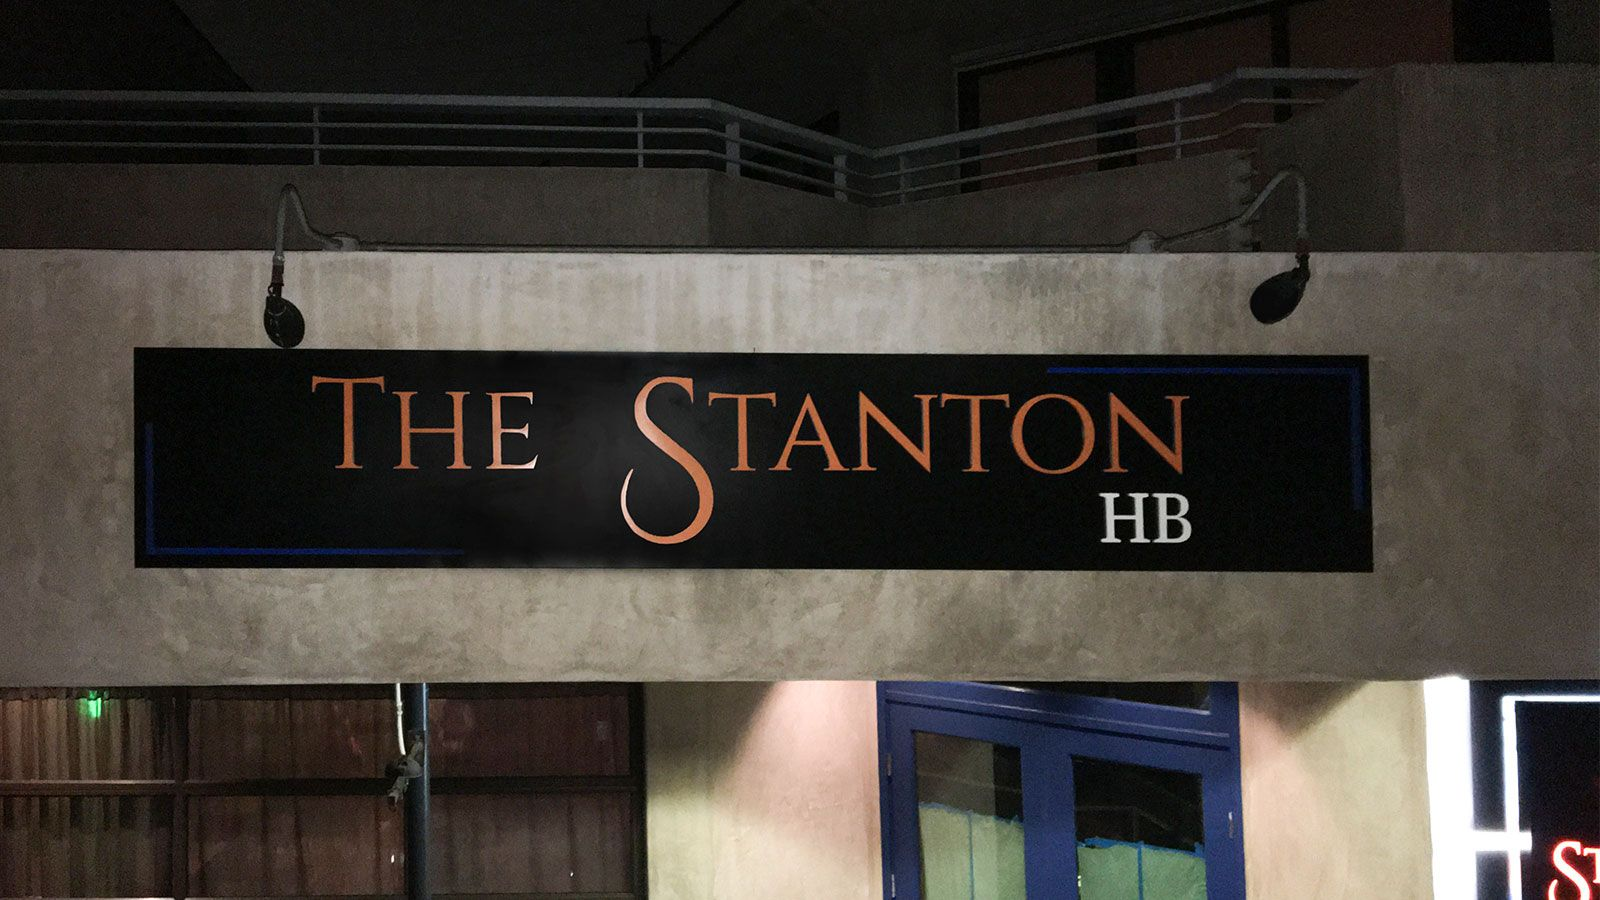 the station lightbox sign